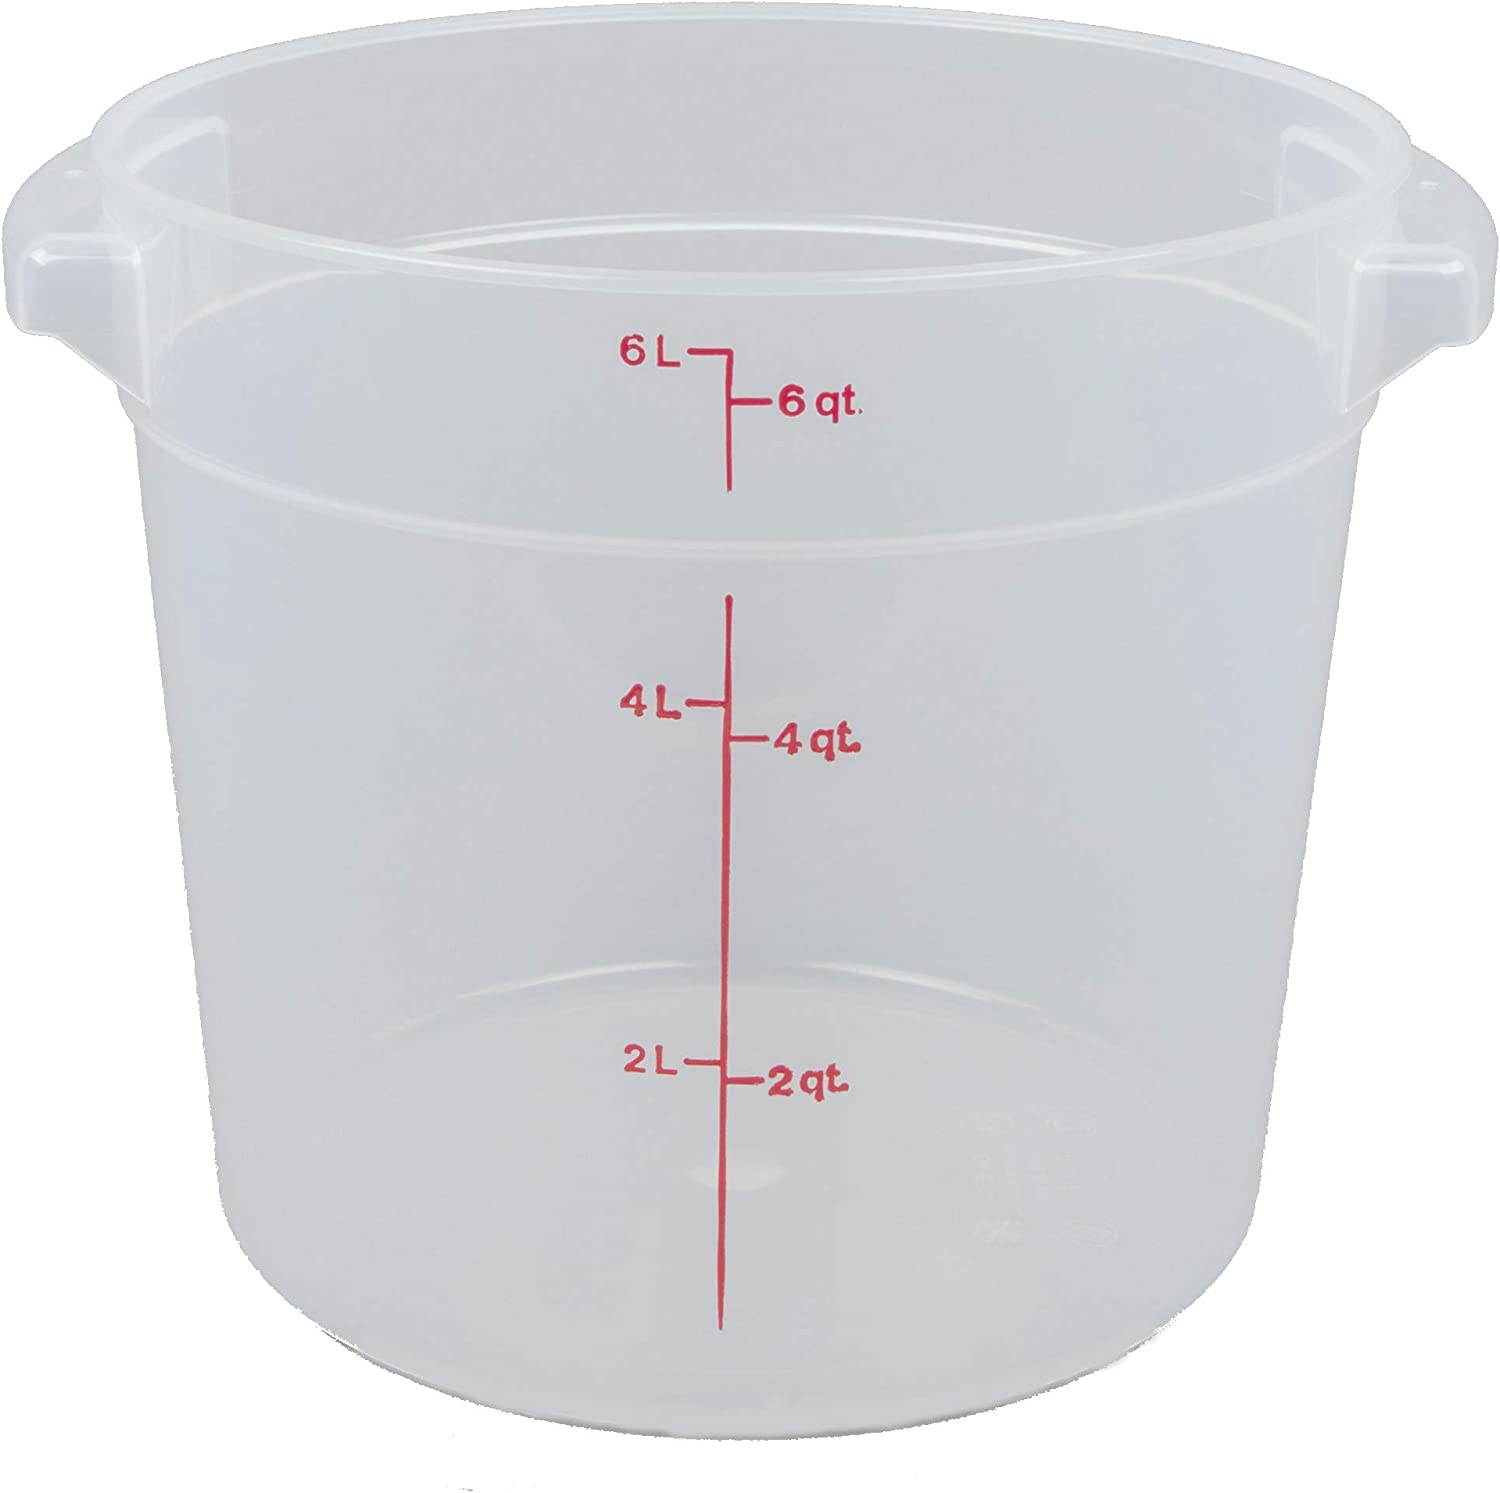 Cambro (RFS6PP190) 6 qt Round Polypropylene Food Storage Container - Camwear